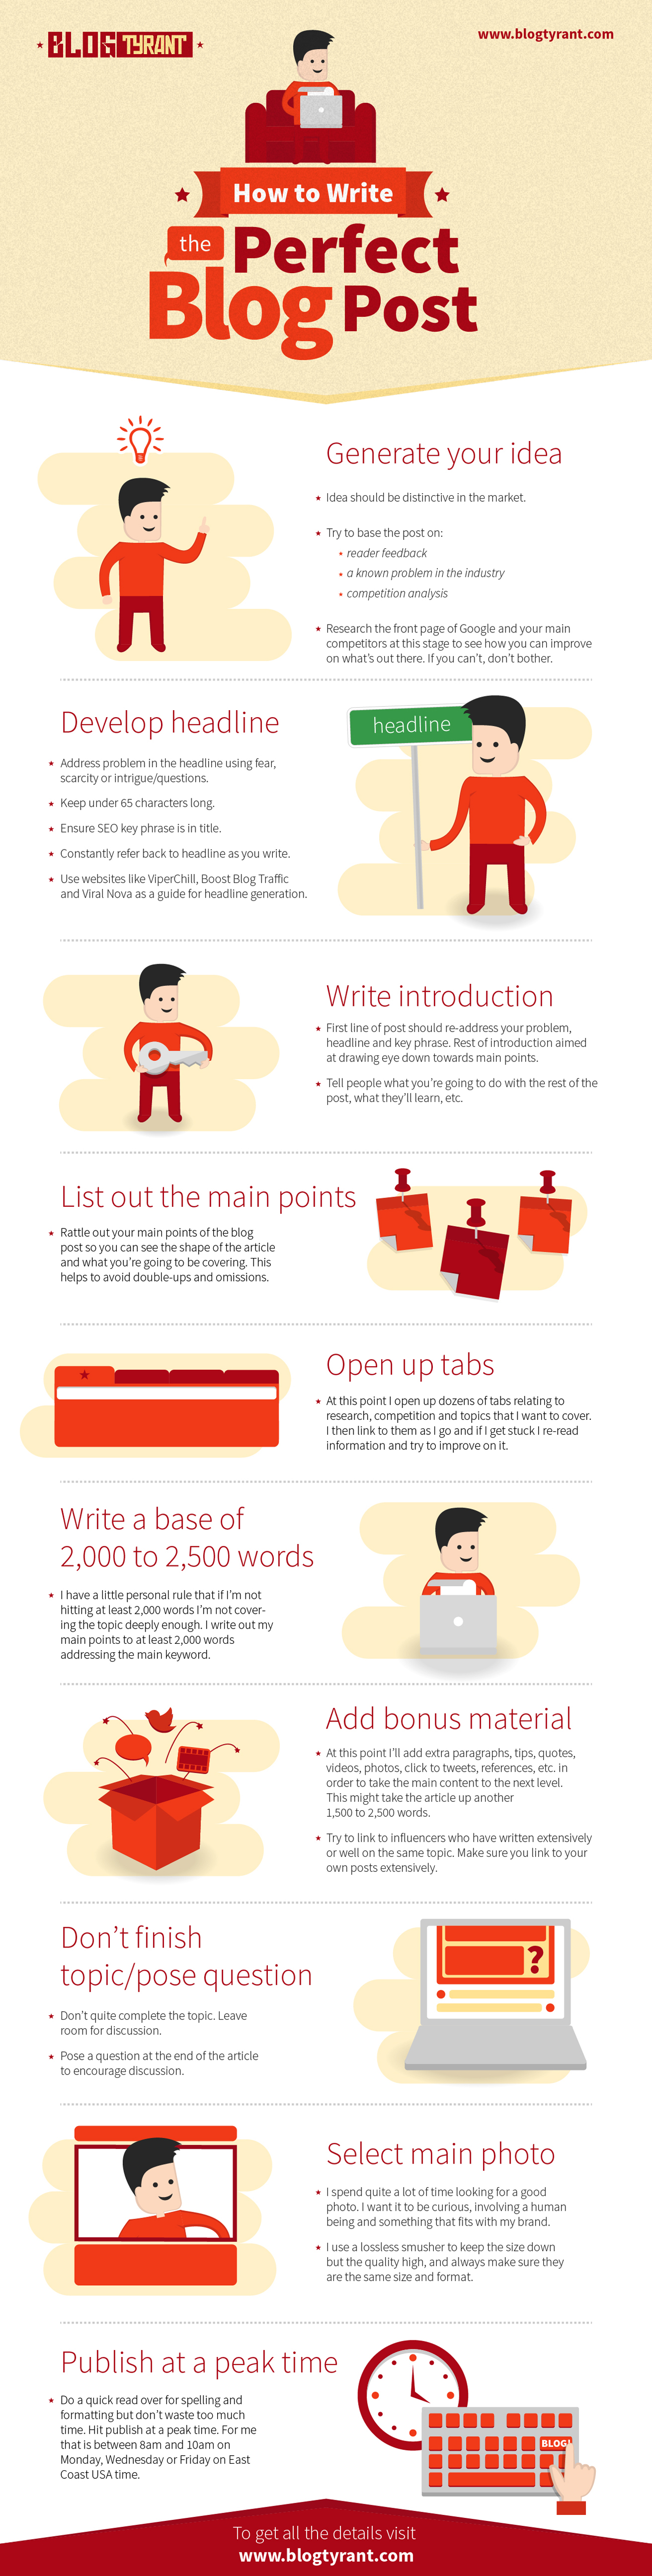 Writing Guide How To Write The Perfect Blog Post A Complete Guide To Copy